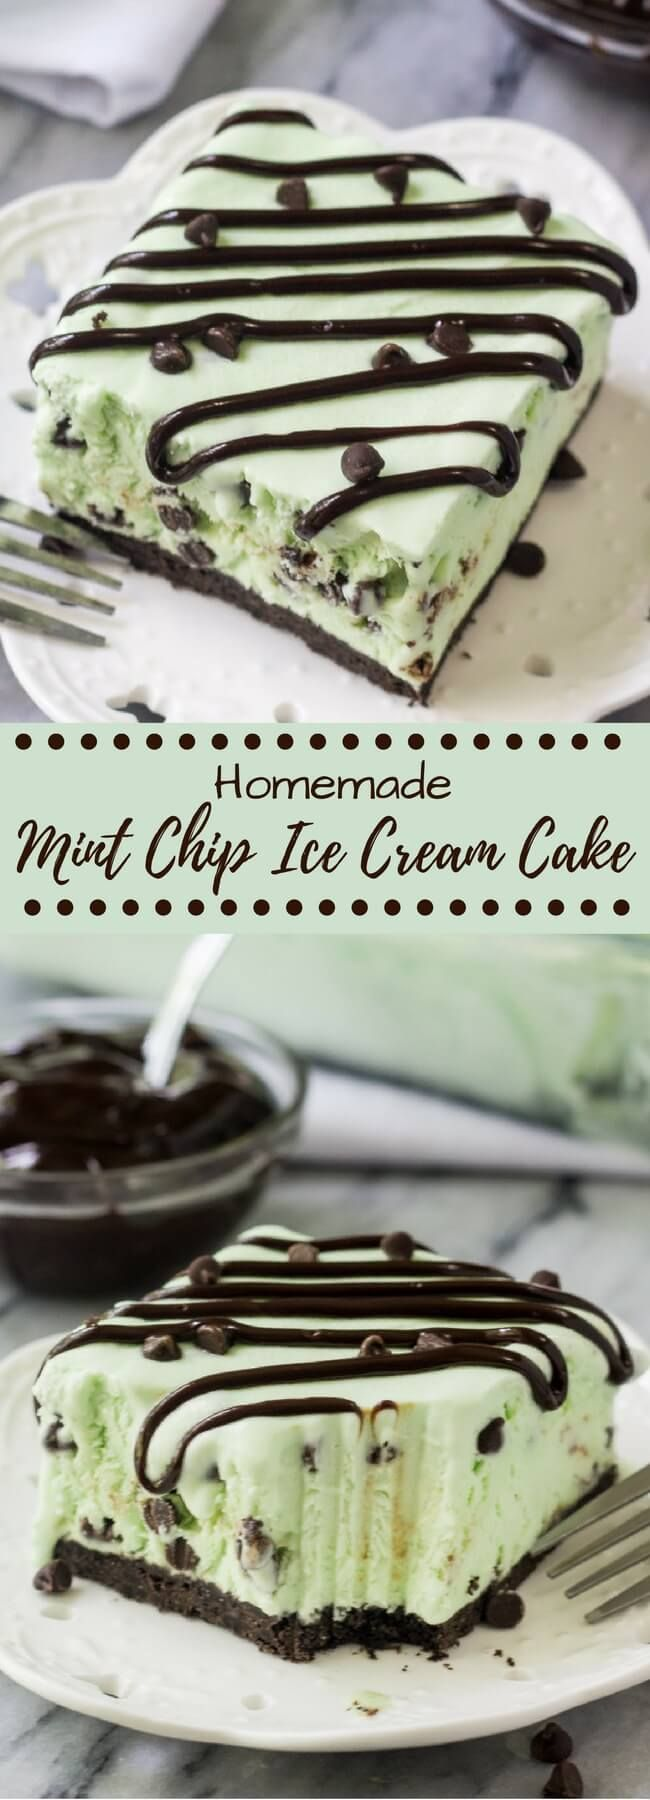 No Churn Mint Chip Ice Cream Cake has an Oreo cookie crust and the creamiest mint chip ice cream ever. Made from scratch without an ice cream maker - it's so easy it is to make this homemade ice cream cake!